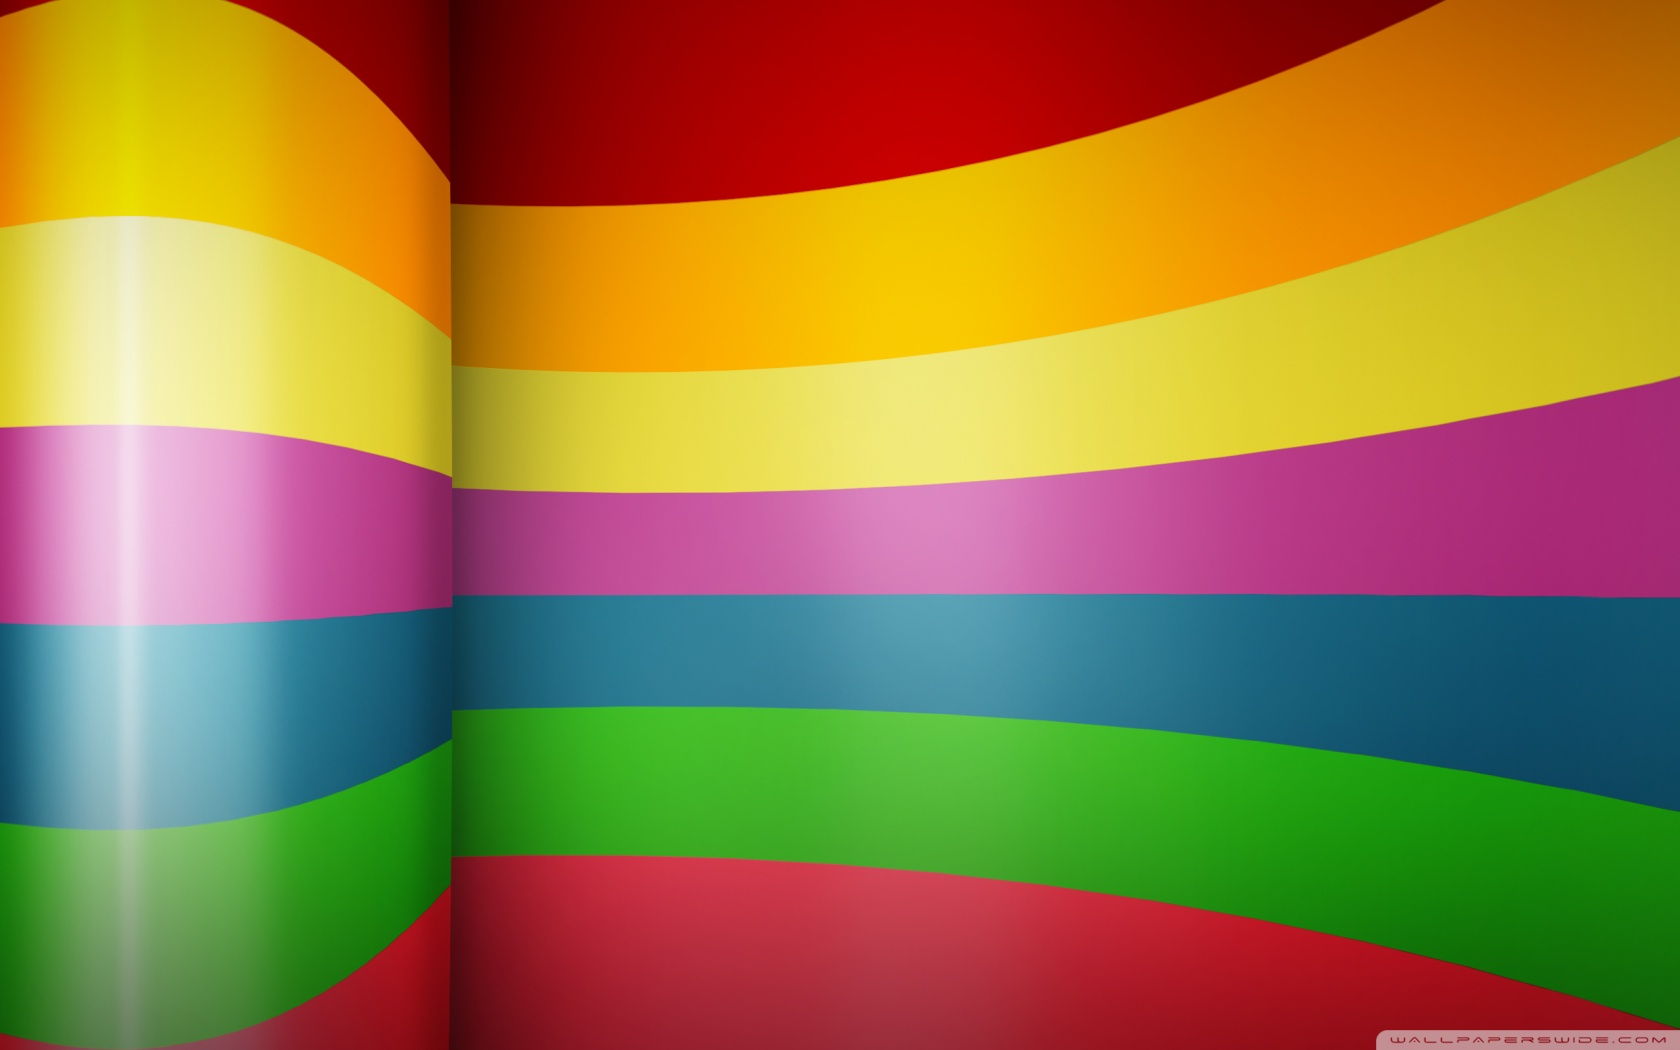 Rainbow Color Background Hd - HD Wallpaper